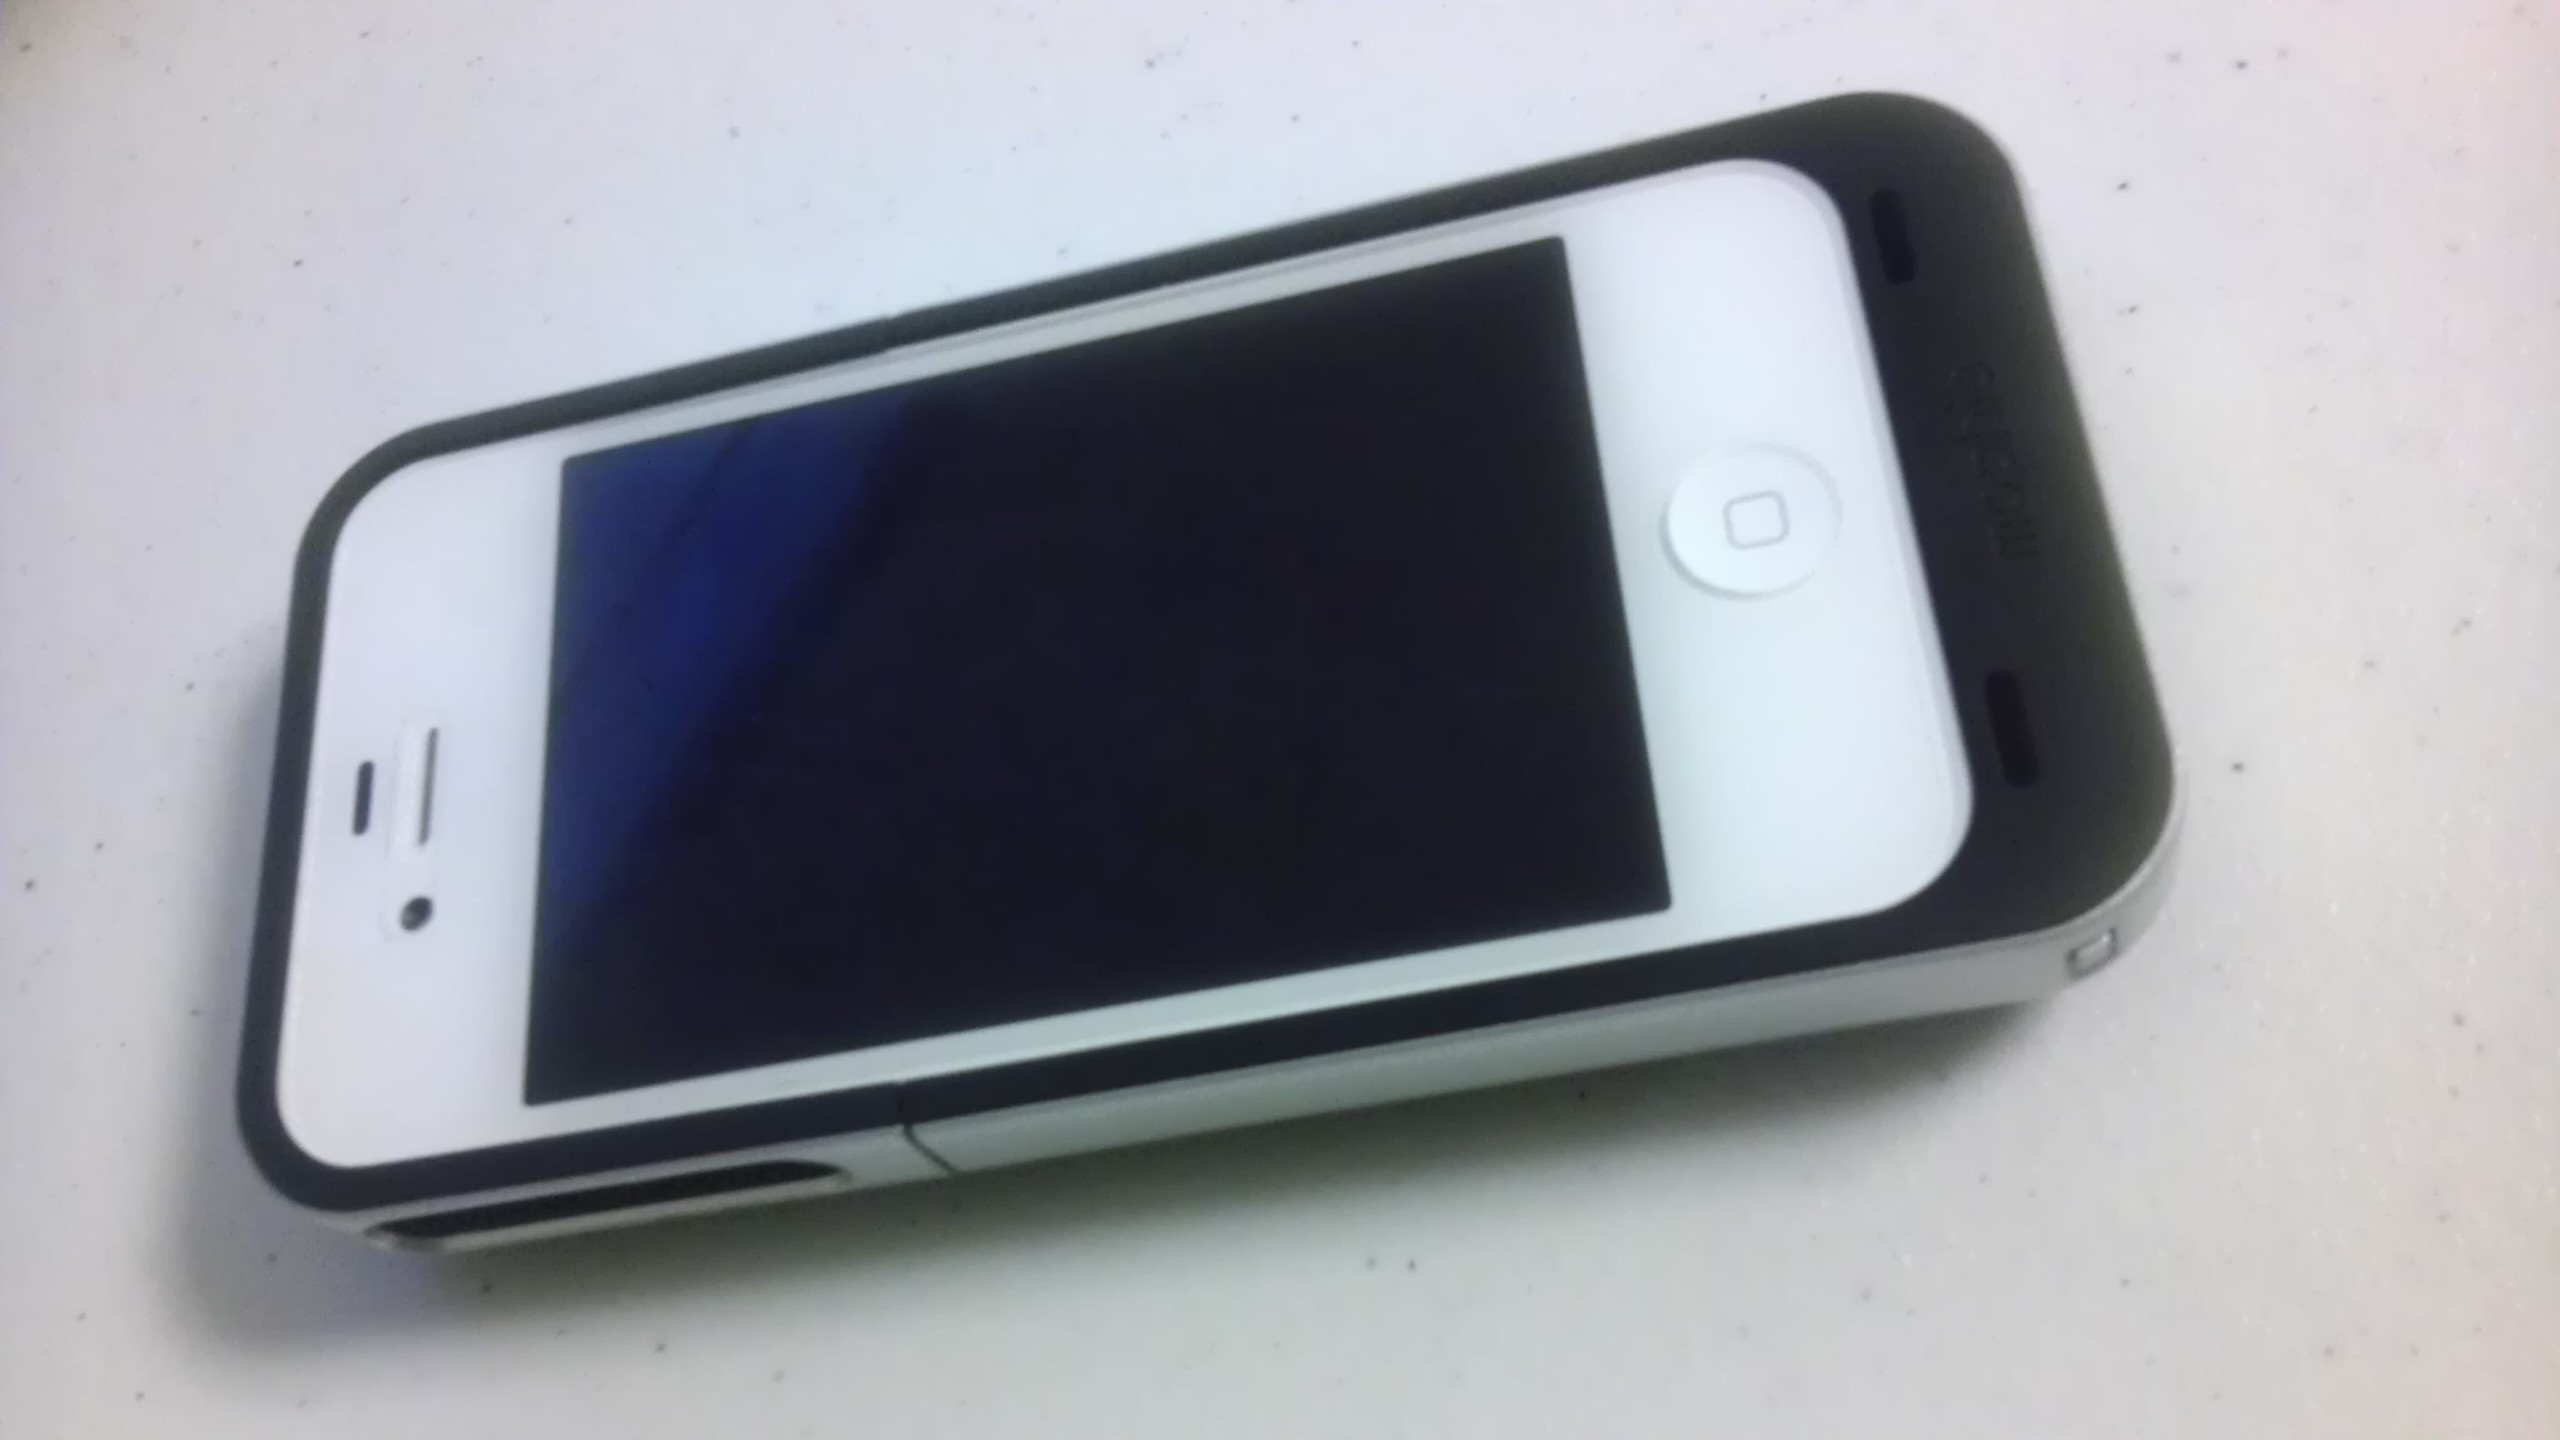 Mophie Air Iphone 5 Review Imag